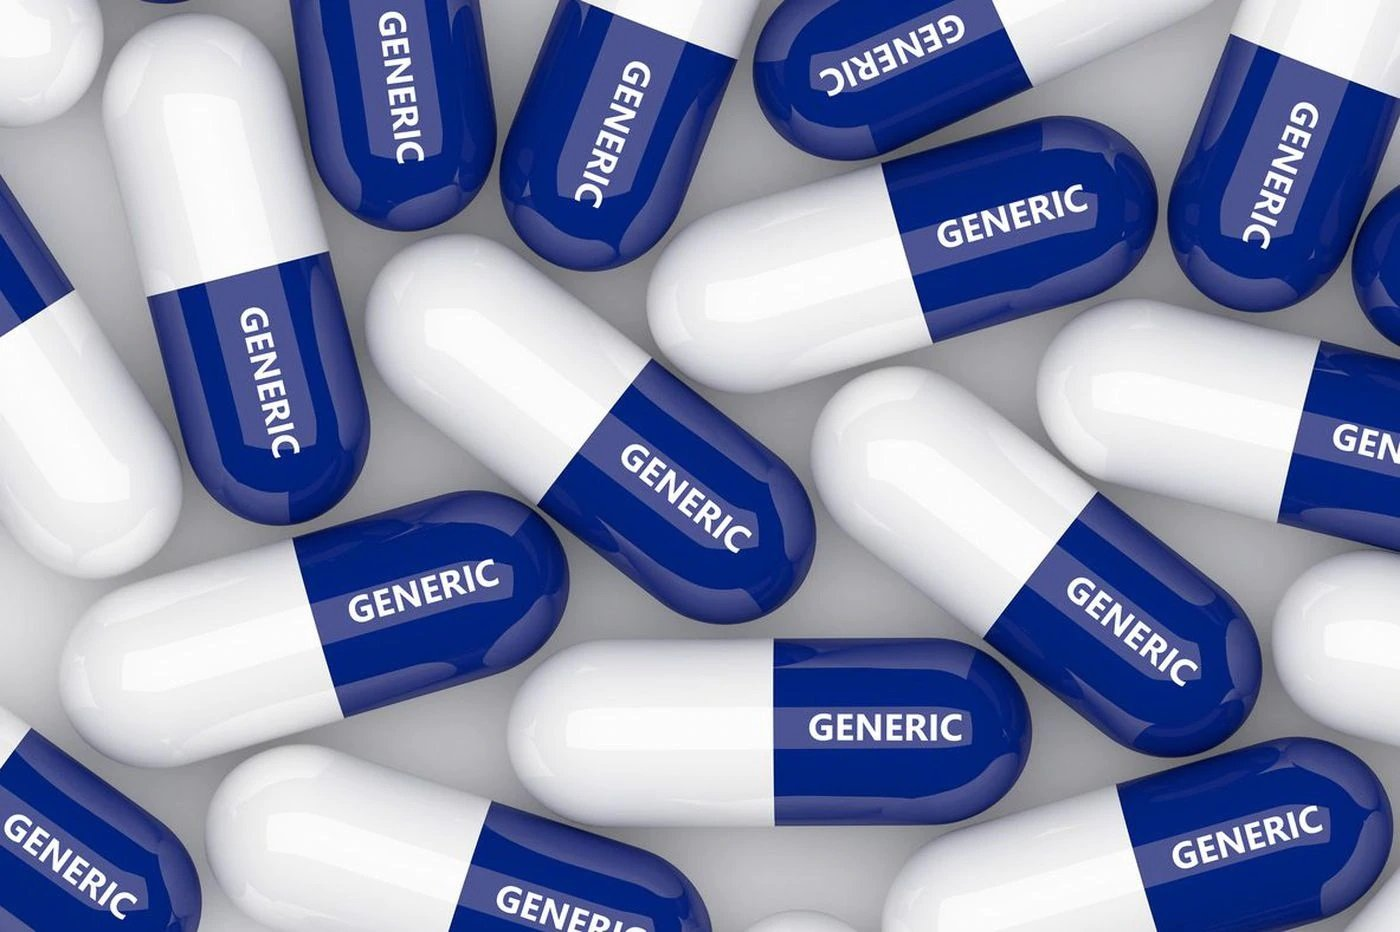 Look back at the decade: Generic drugs